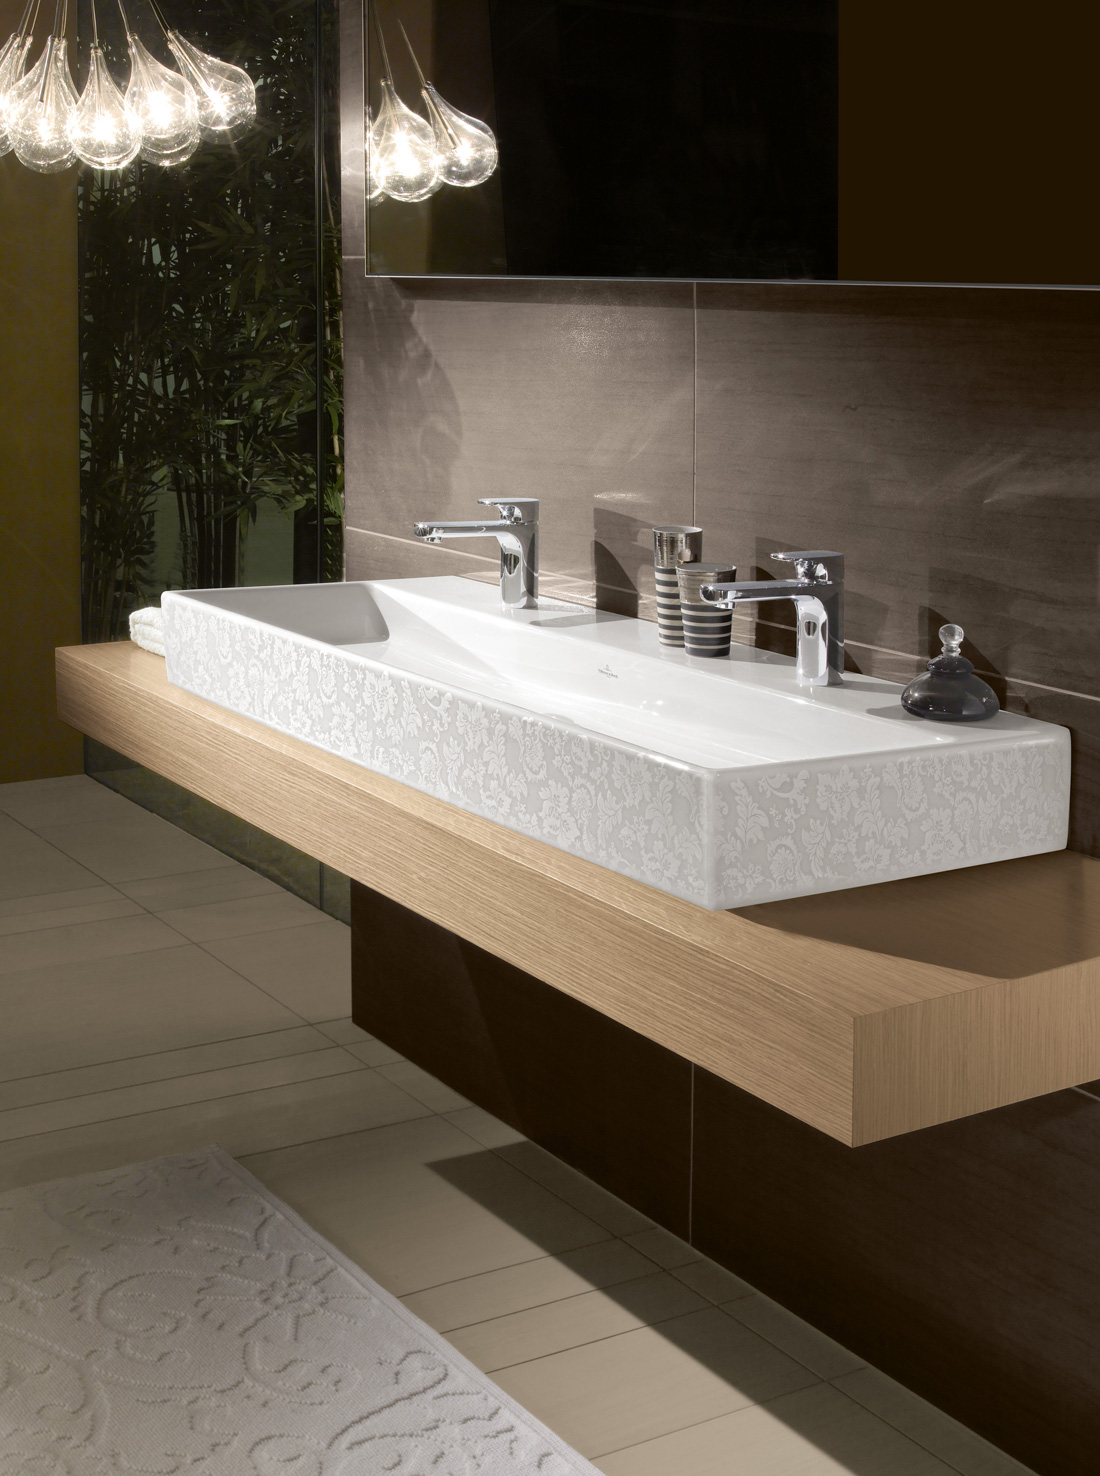 Sleek Bathroom Collection Focusing on the Essential: Memento By ...